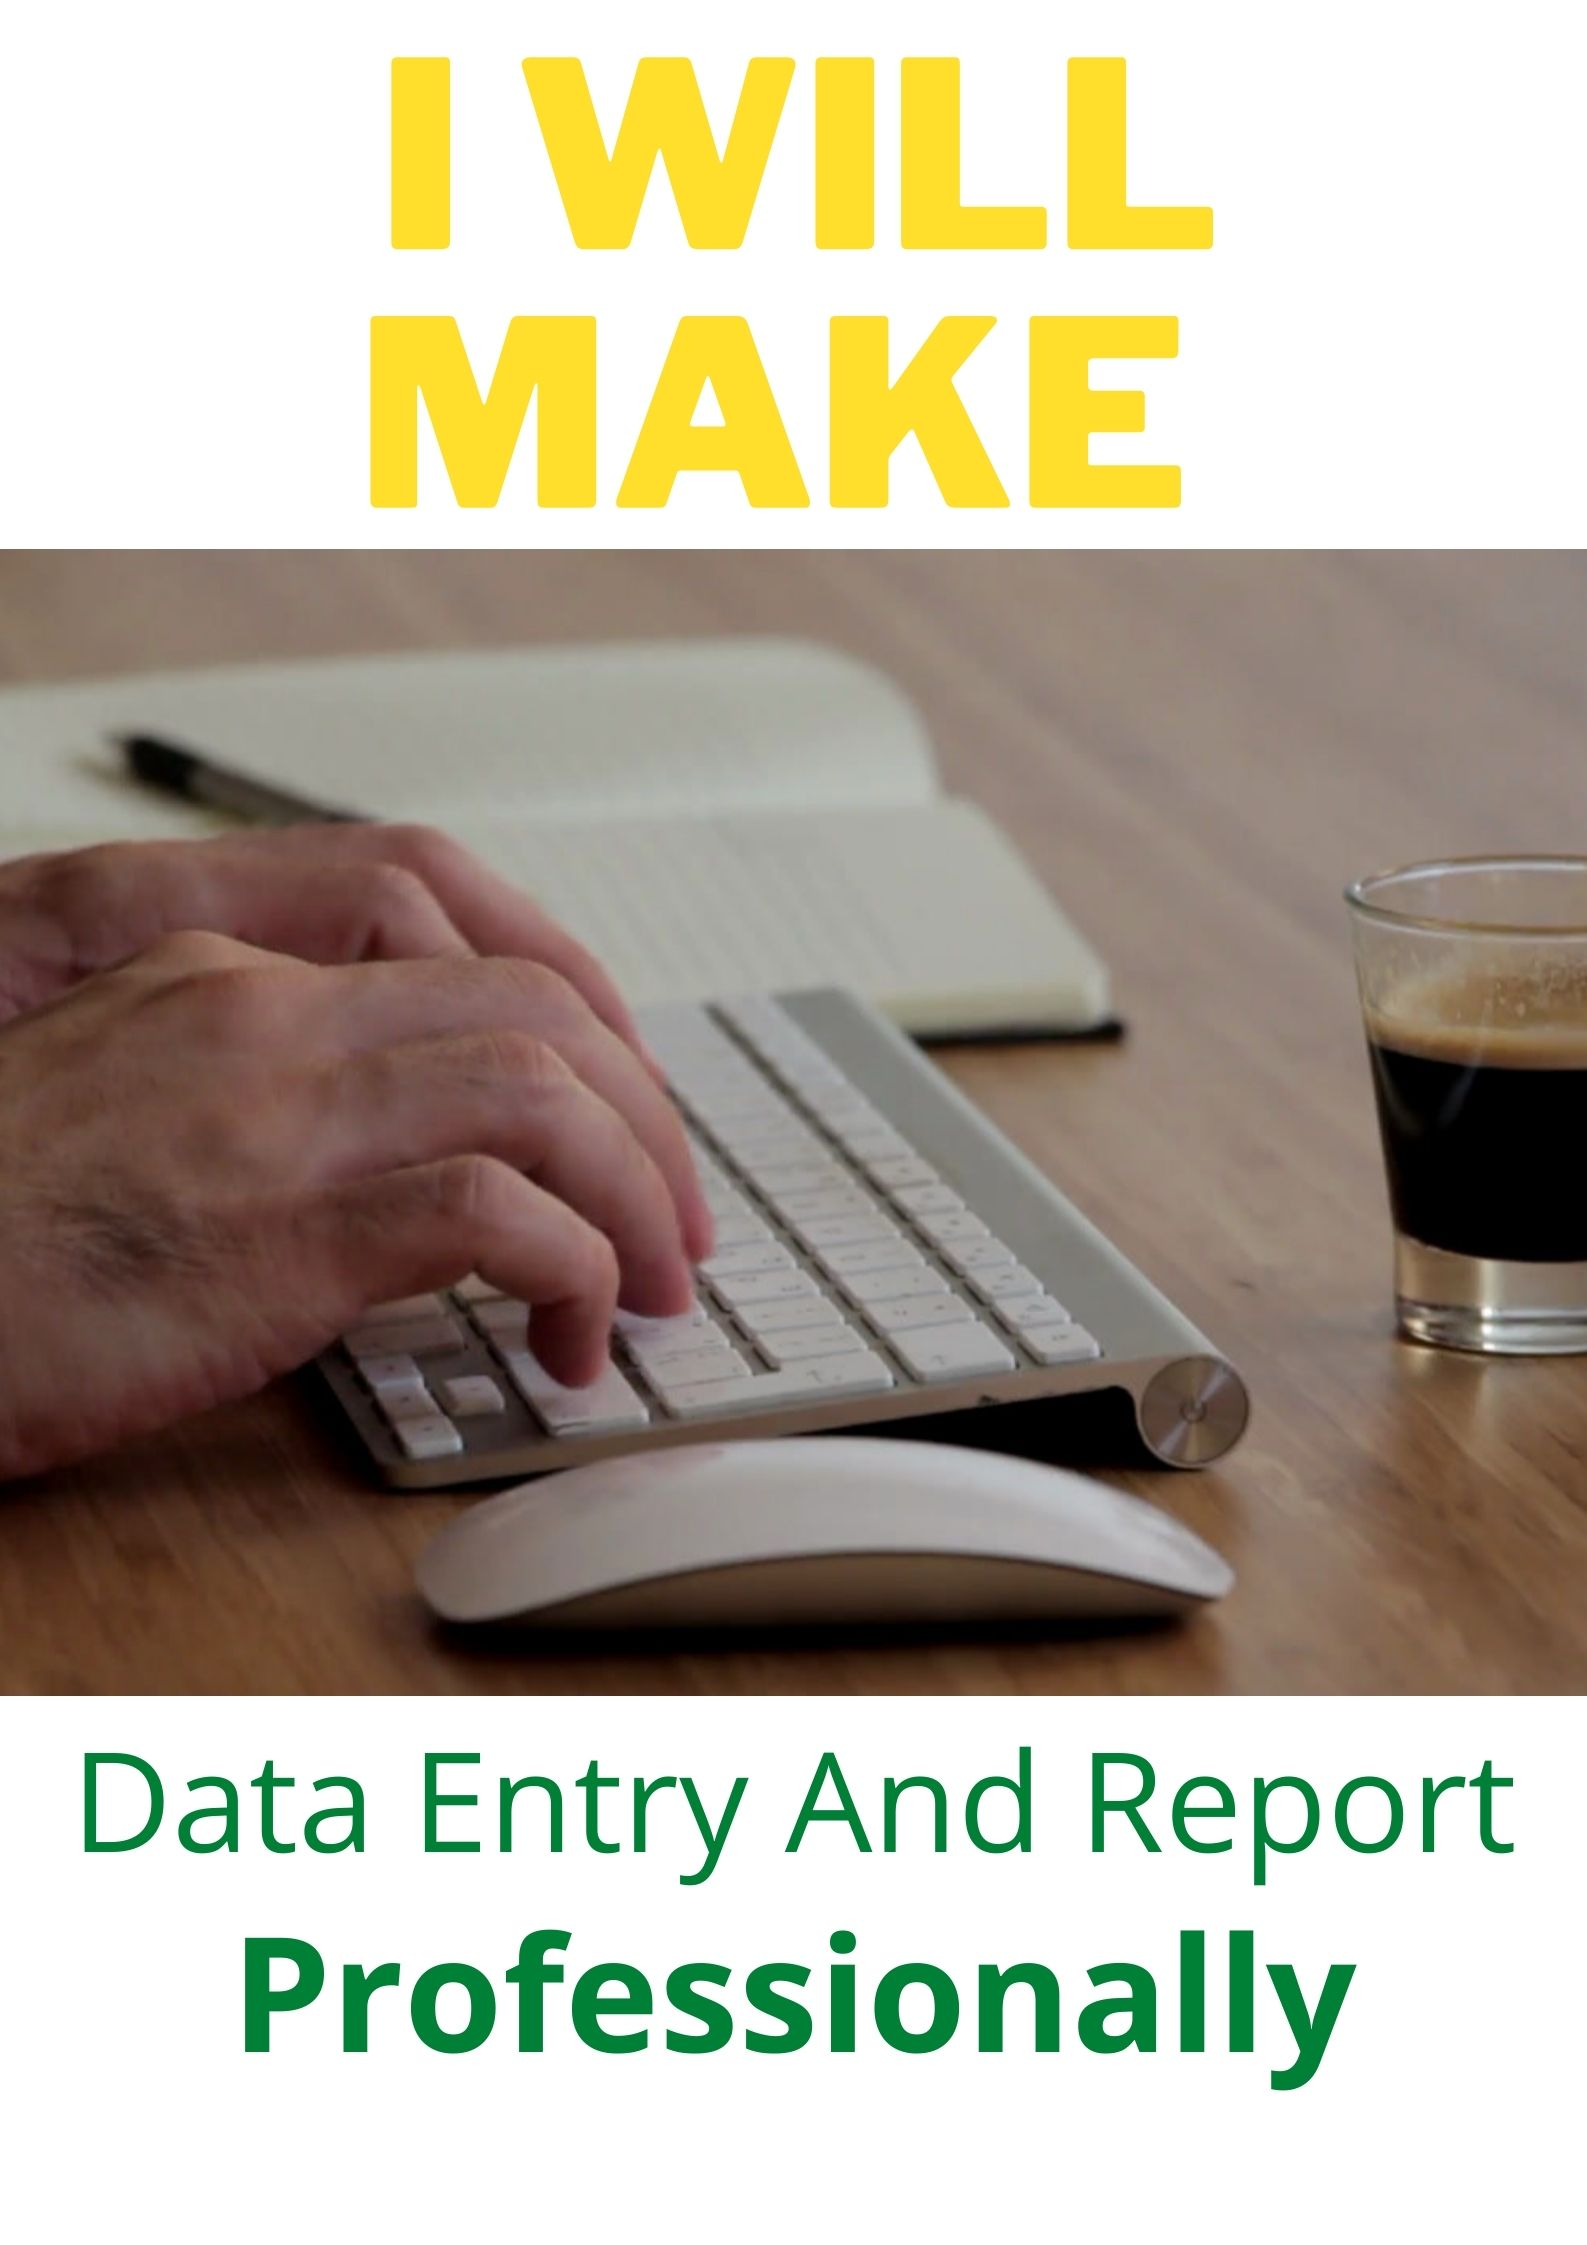 Create Data entry And Report Professionally